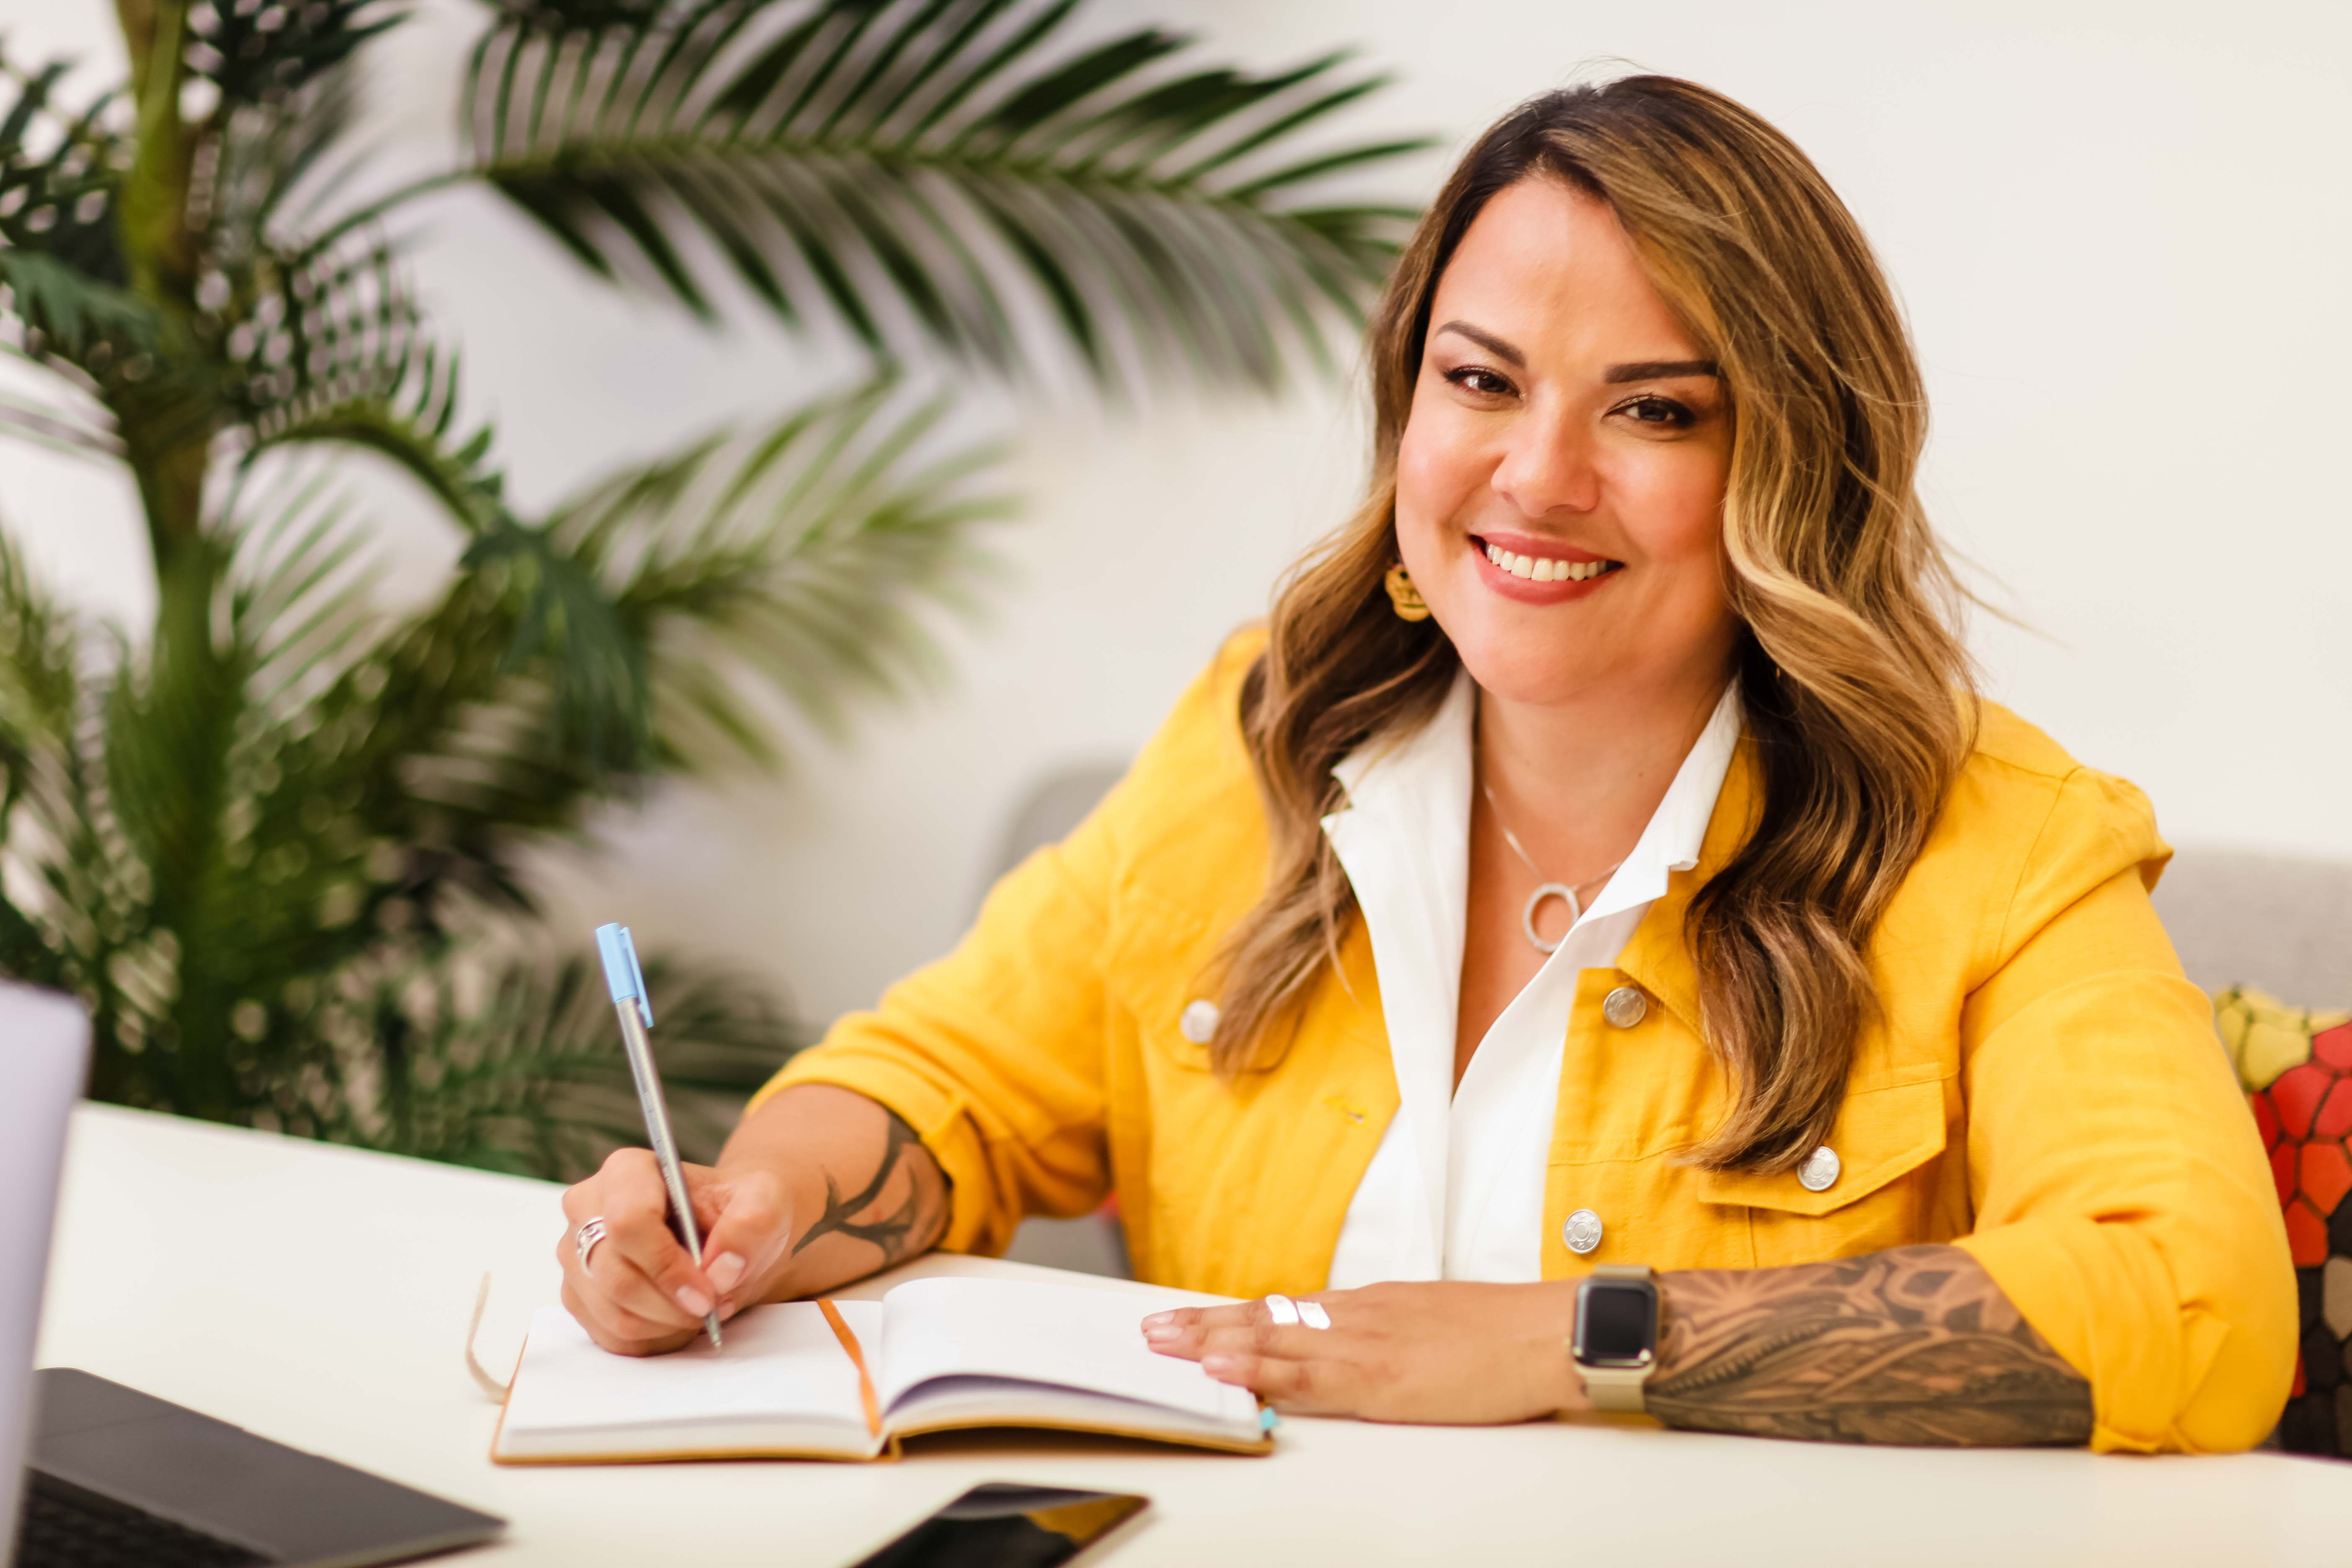 Karla Briones smiling and writing in a notebook